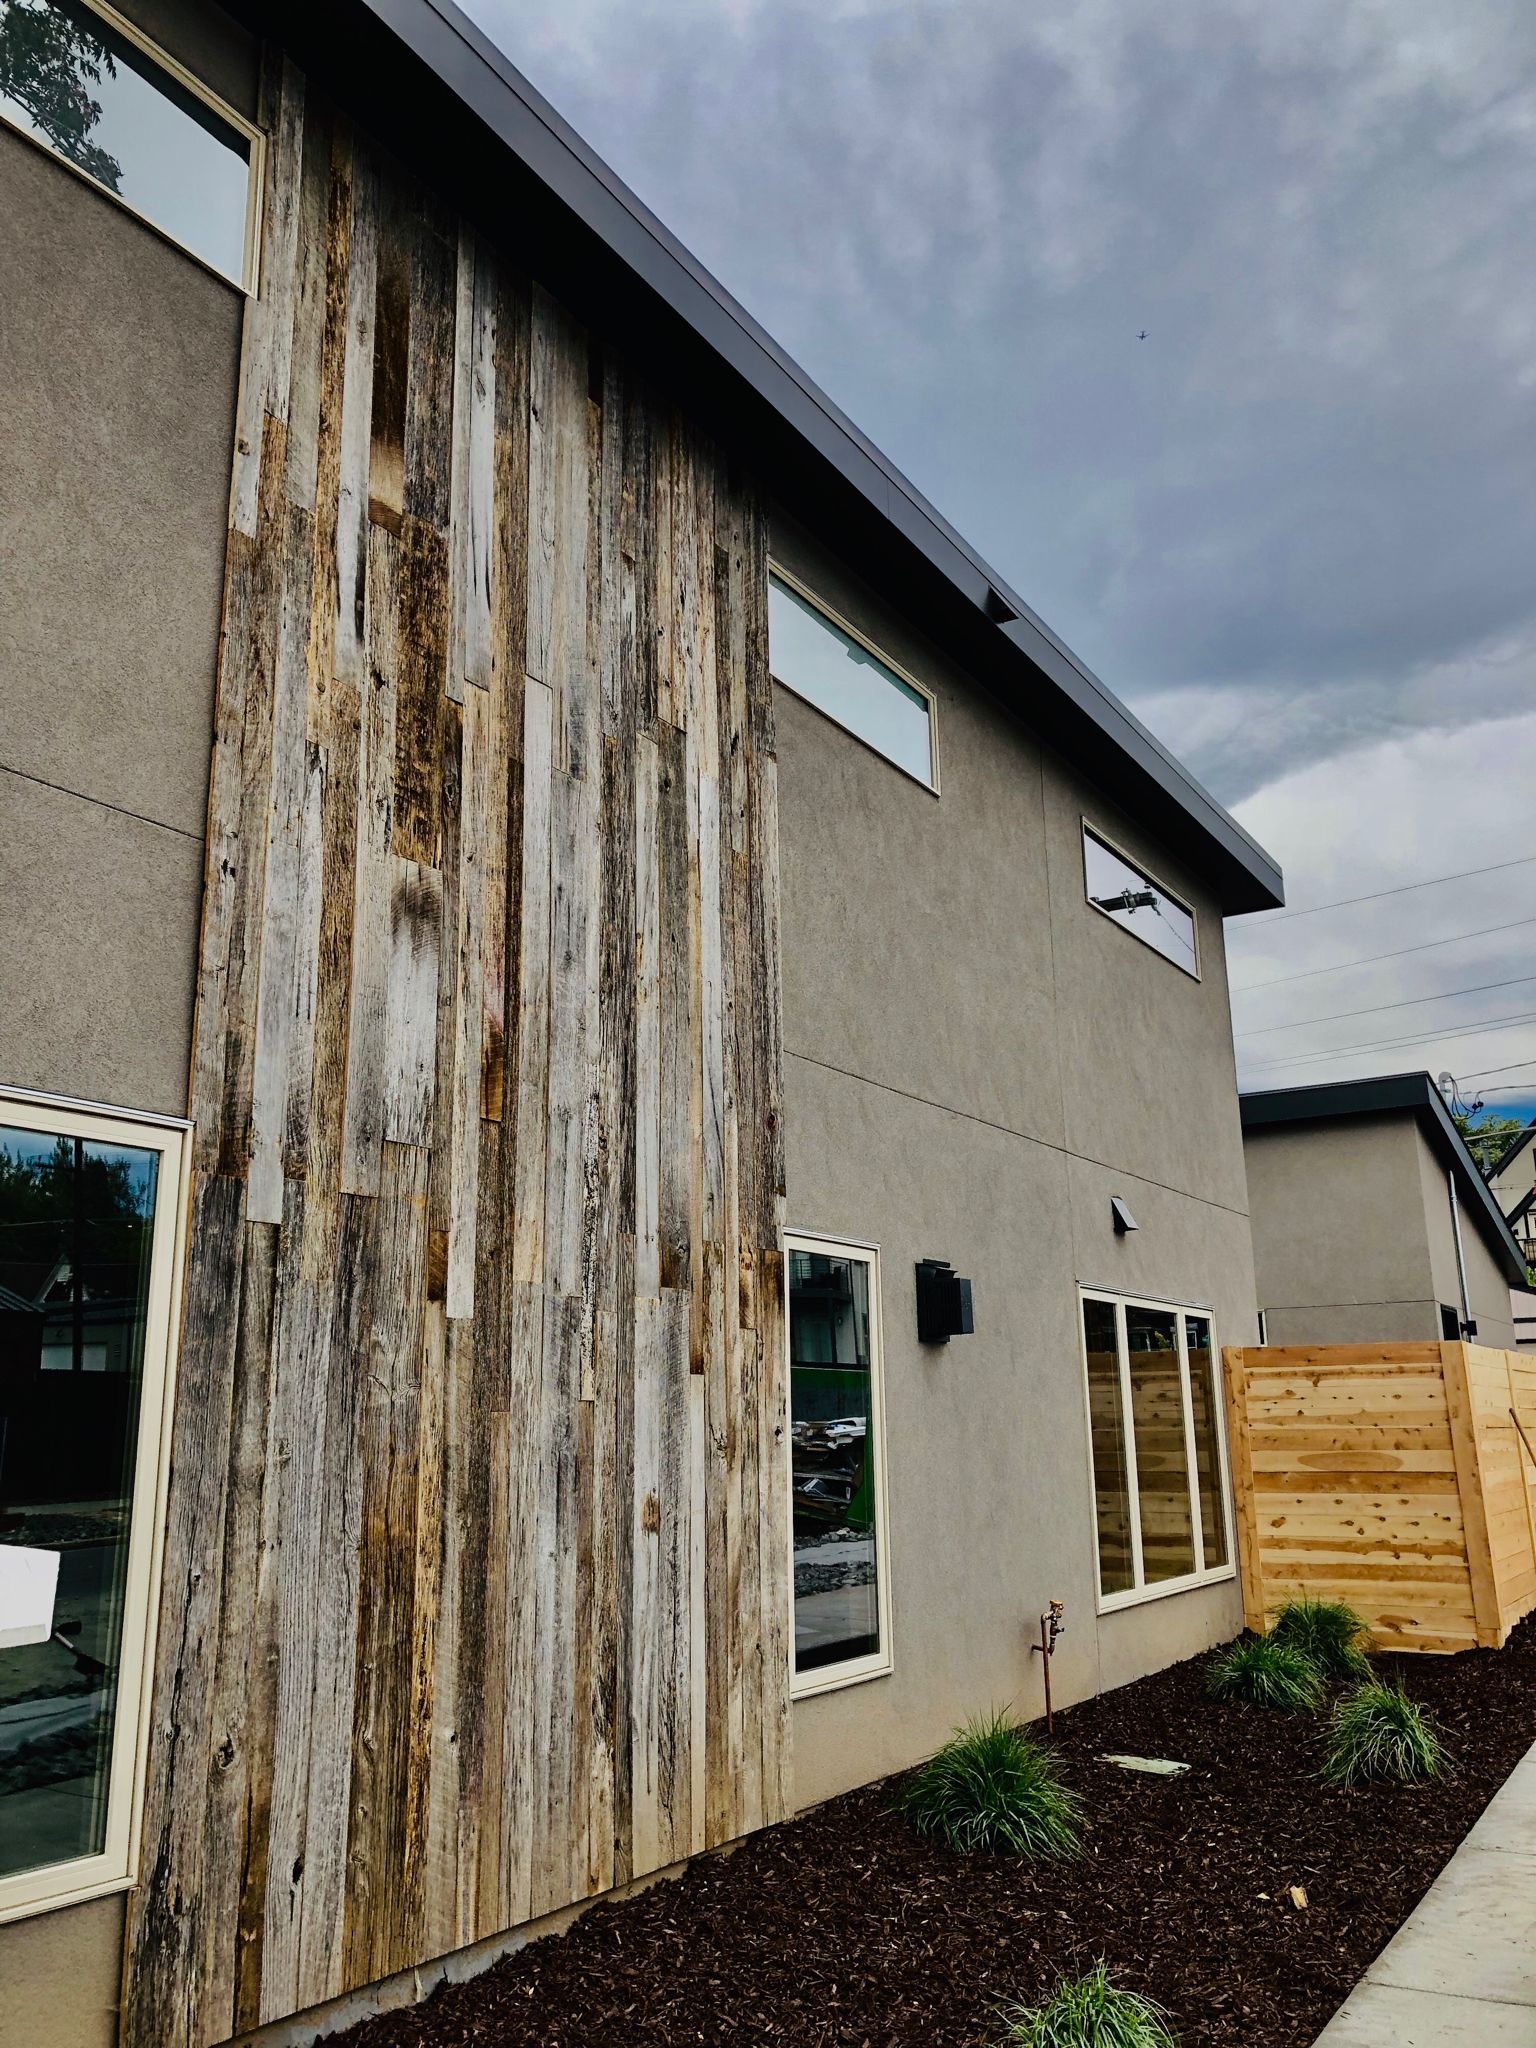 Thank You To Tom H For Sharing A Photo Of This Stunning Rustic Modern Home In Denver Co Tom Used Front Range Timber S Rec Wood Stucco Homes Stucco Exterior